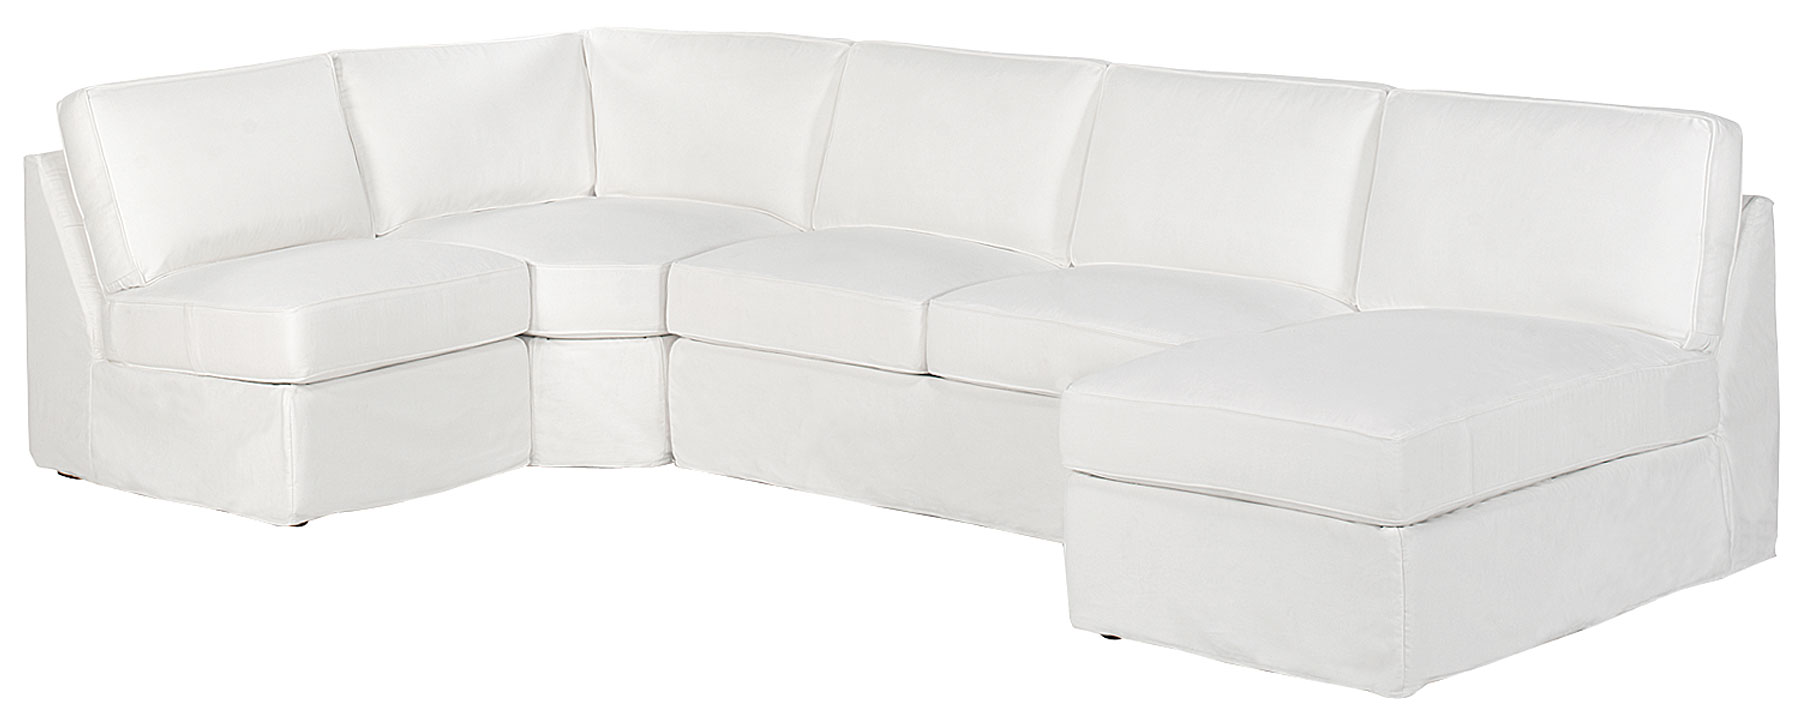 Ava Fabric Slipcovered Armless Contemporary Sectional Sofa. clubfurniture  sc 1 st  Club Furniture : armless sectionals - Sectionals, Sofas & Couches